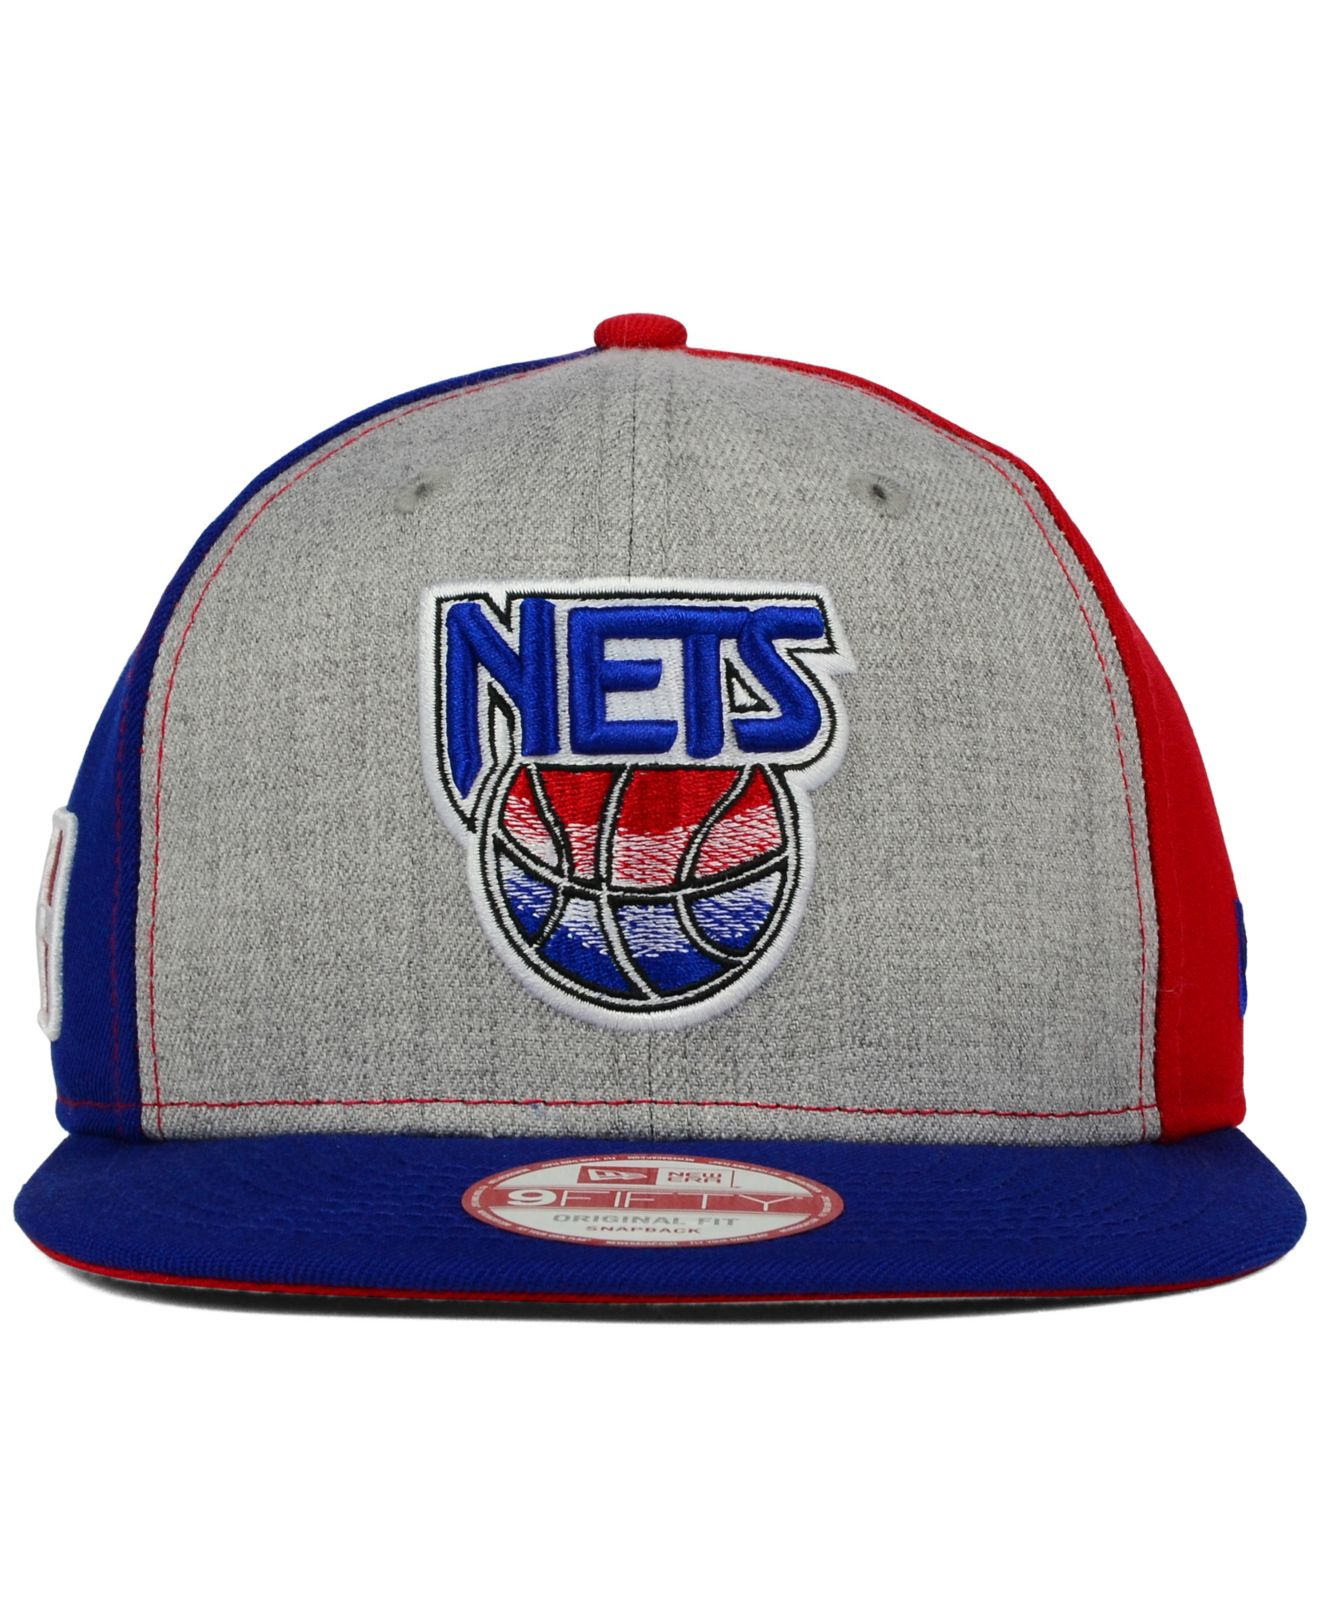 b3ca9624889 Lyst - Ktz New Jersey Nets Tri-top 9fifty Snapback Cap in Gray for Men